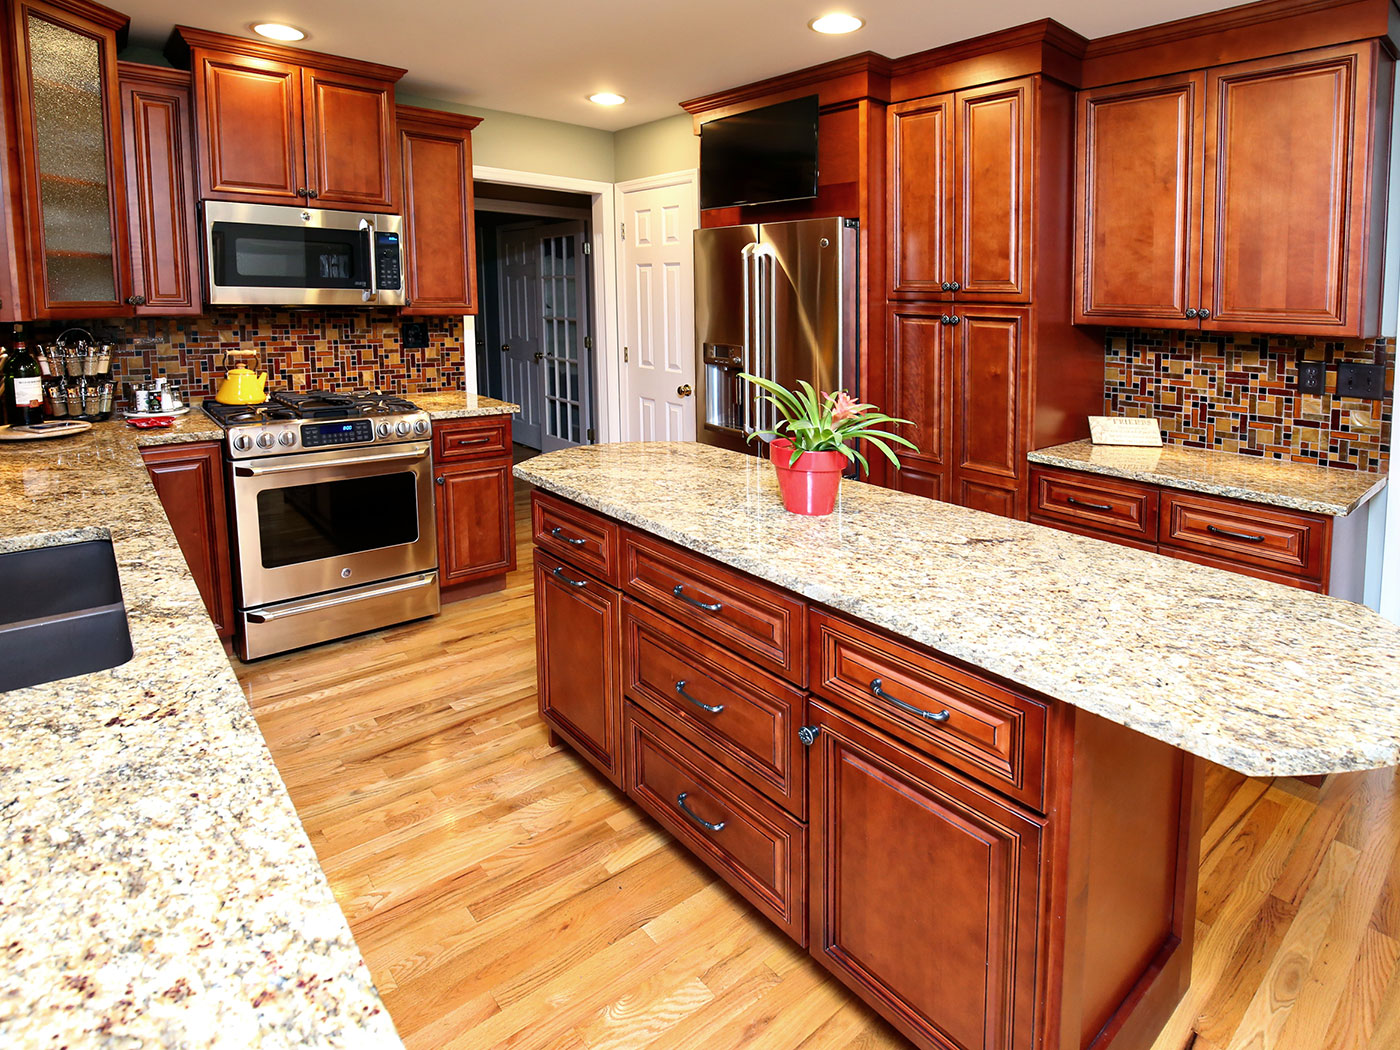 Standard Kitchen Cabinets Mocha - Craftworks Custom Cabinetry - Rochester, NY